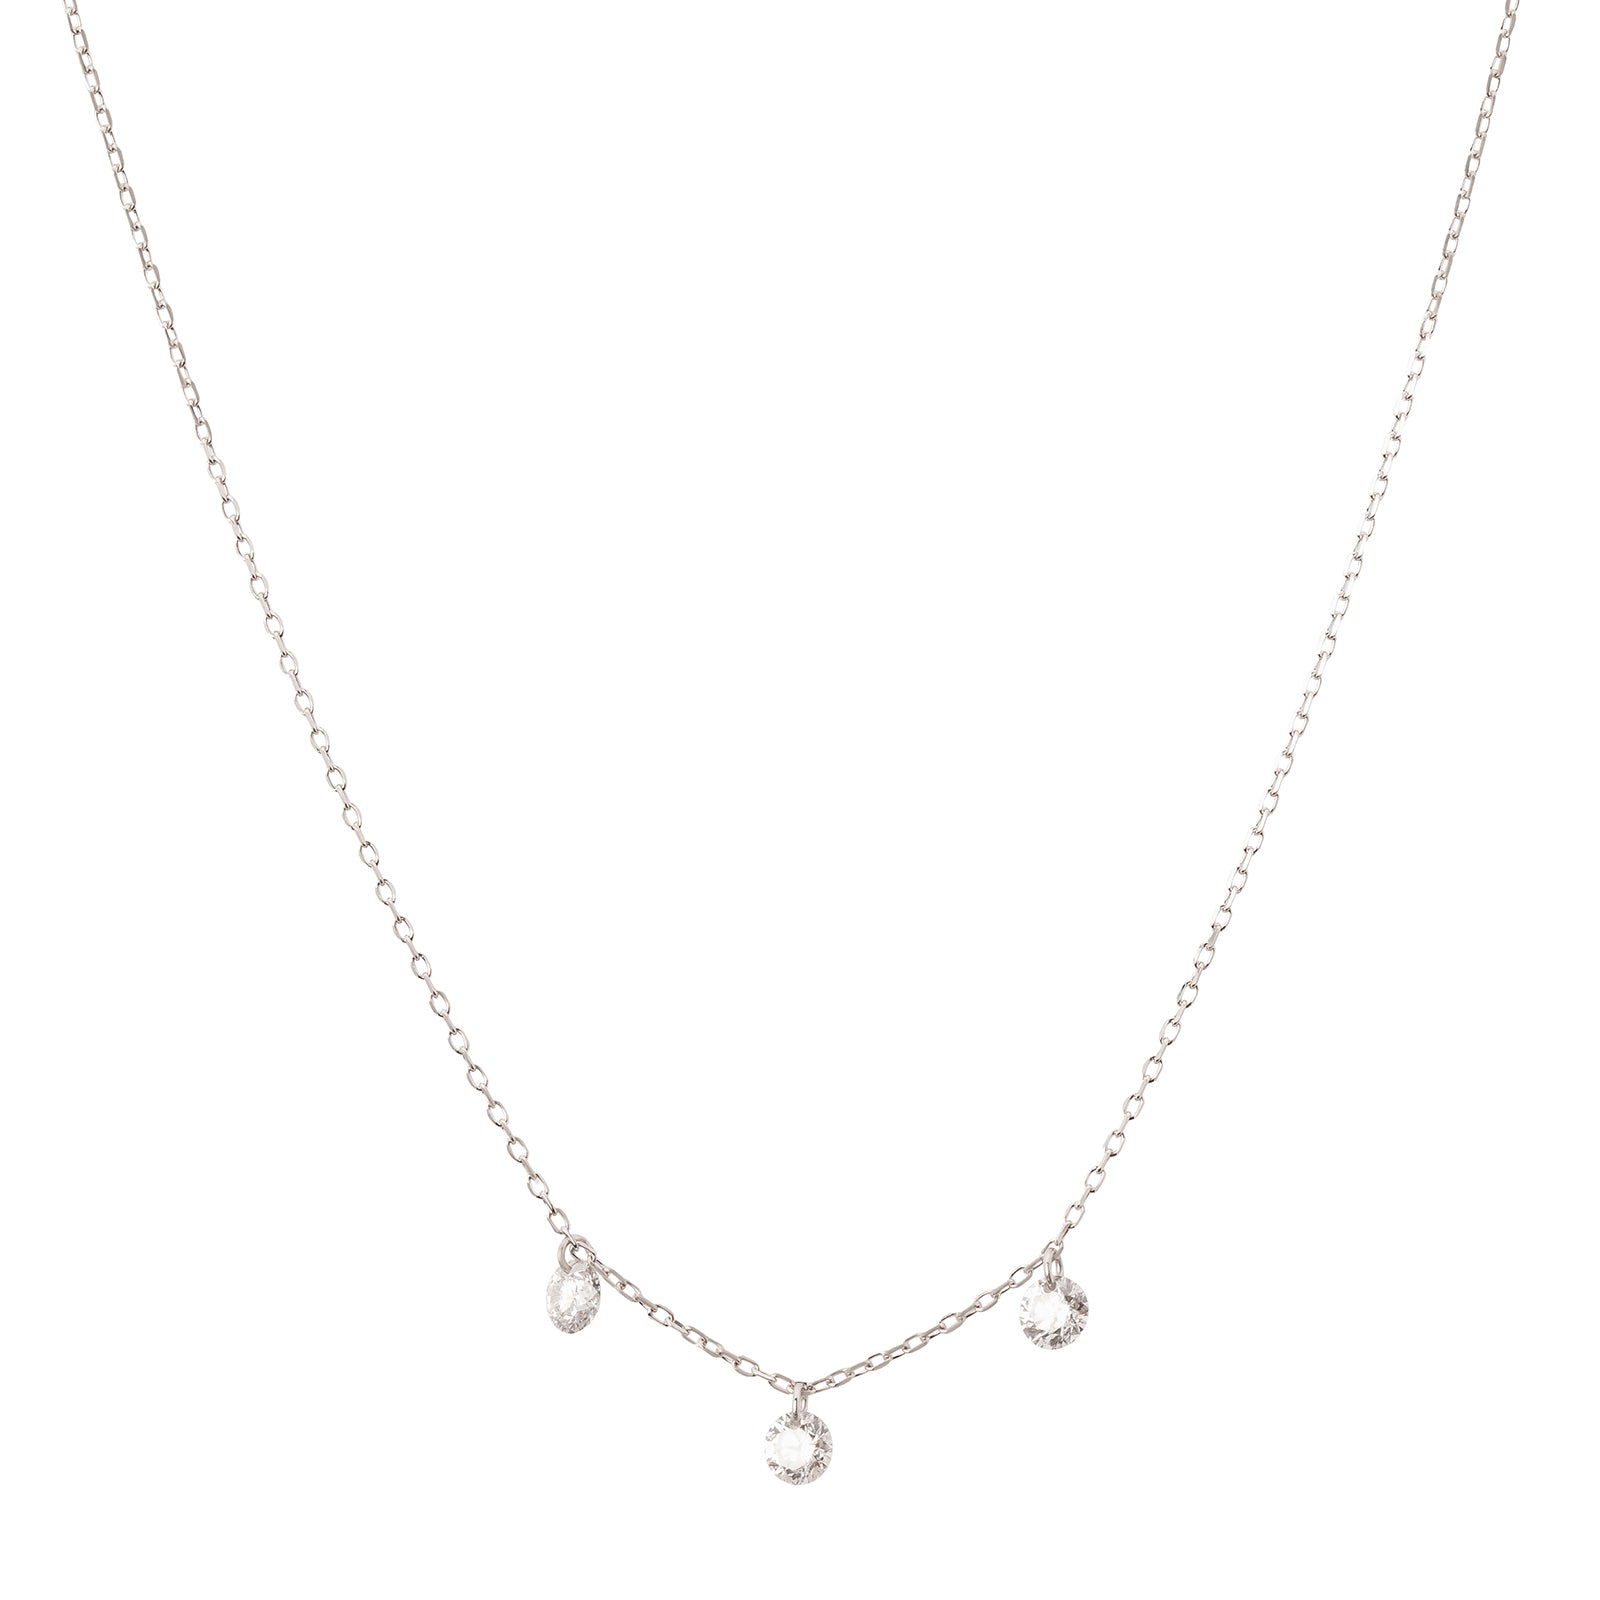 Persée Paris Danaé Trio Hanging Diamond Necklace - White Gold - Necklaces - Broken English Jewelry